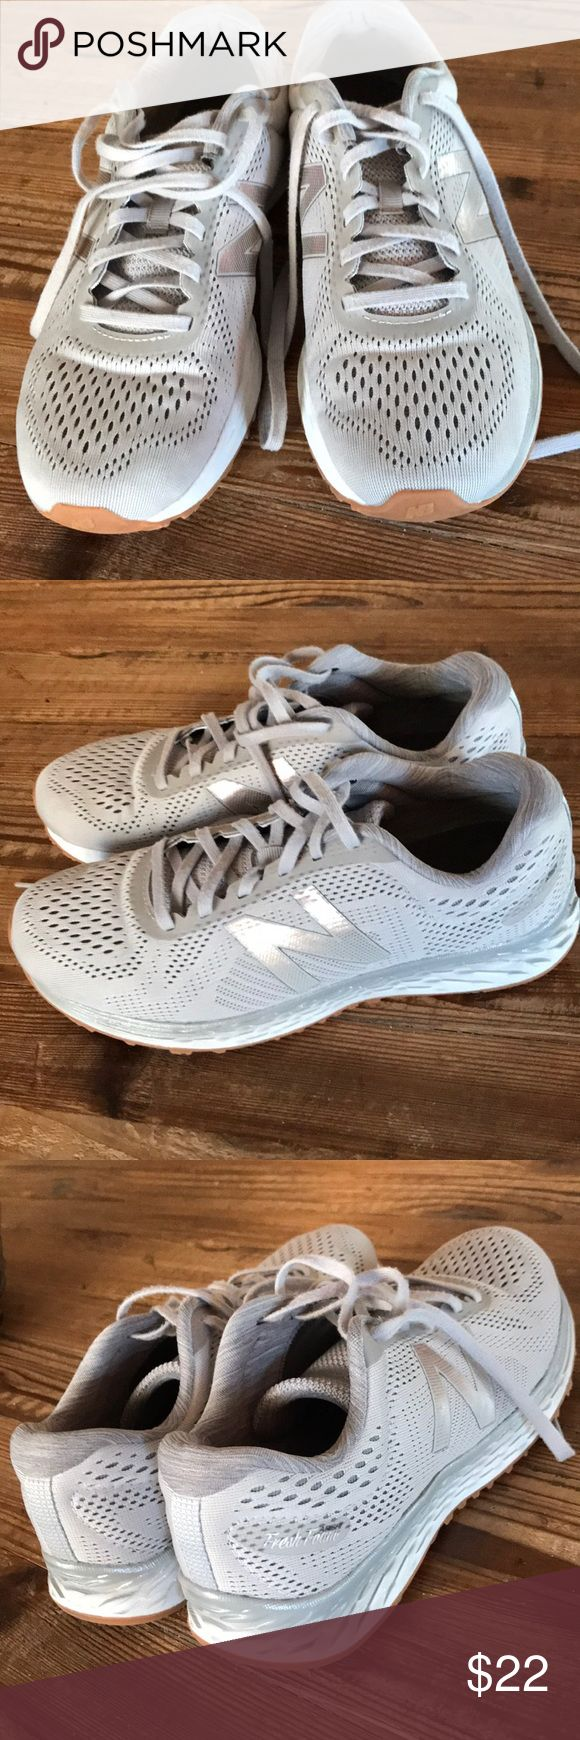 New Balance Sneakers New Balance Sneakers with fresh foam sole. Super comfy, light grey lace-up with silver New Balance logo. Machine washable. Freshly washed and in great used condition! New Balance Shoes Athletic Shoes